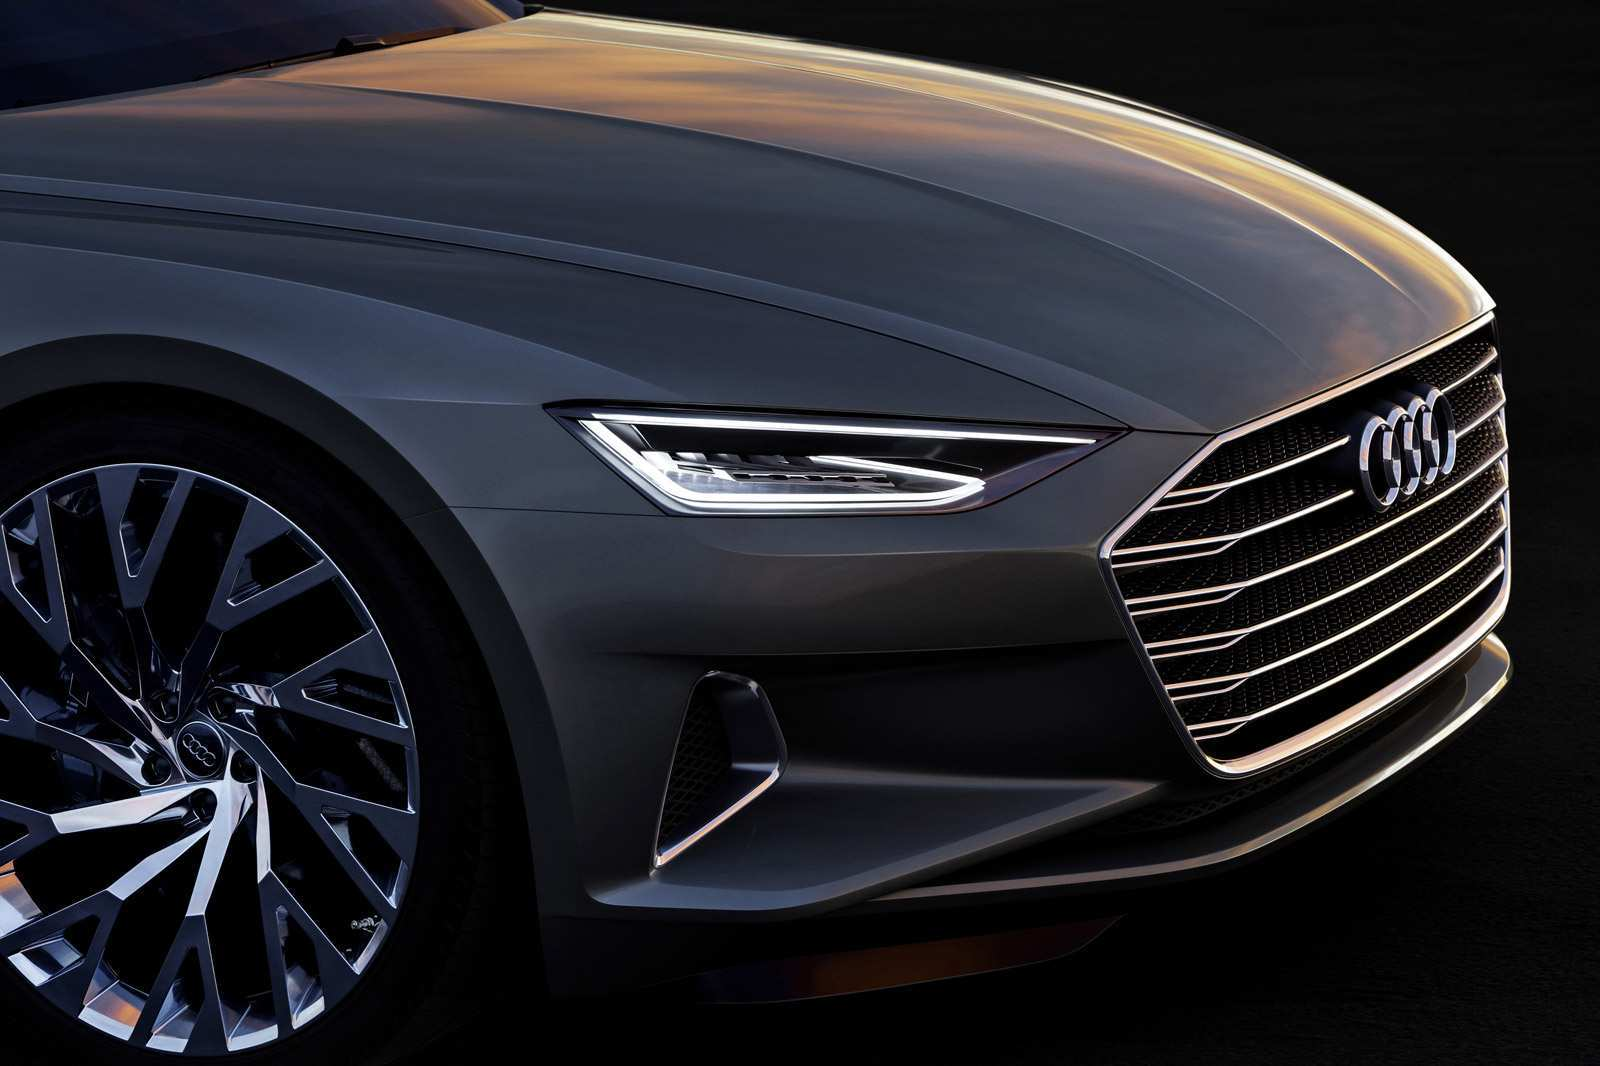 49 New 2020 Audi A9 Concept Release